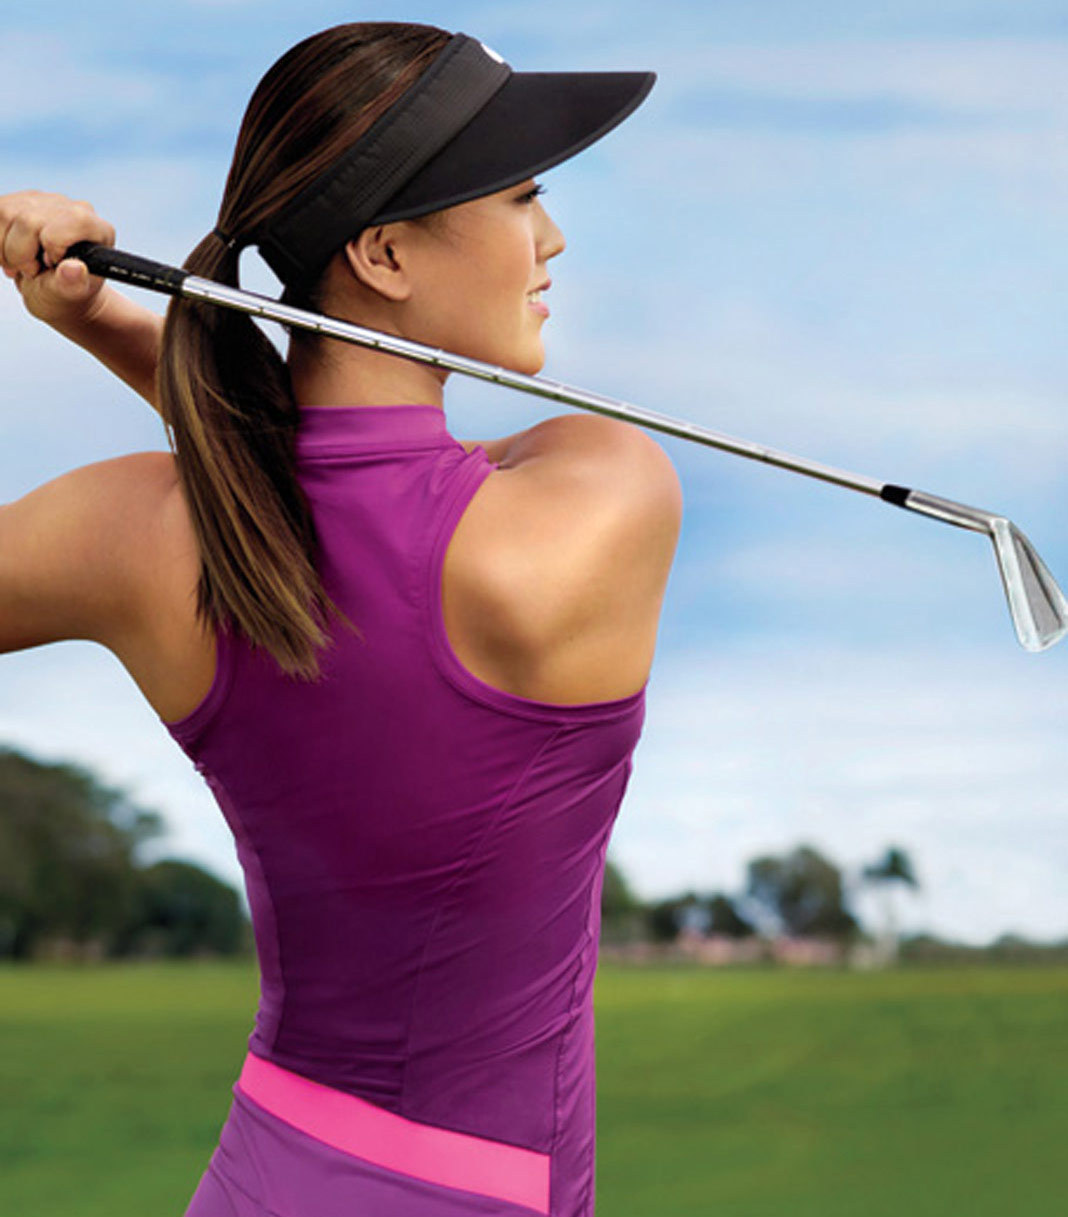 Golf michelle wie nude join. agree